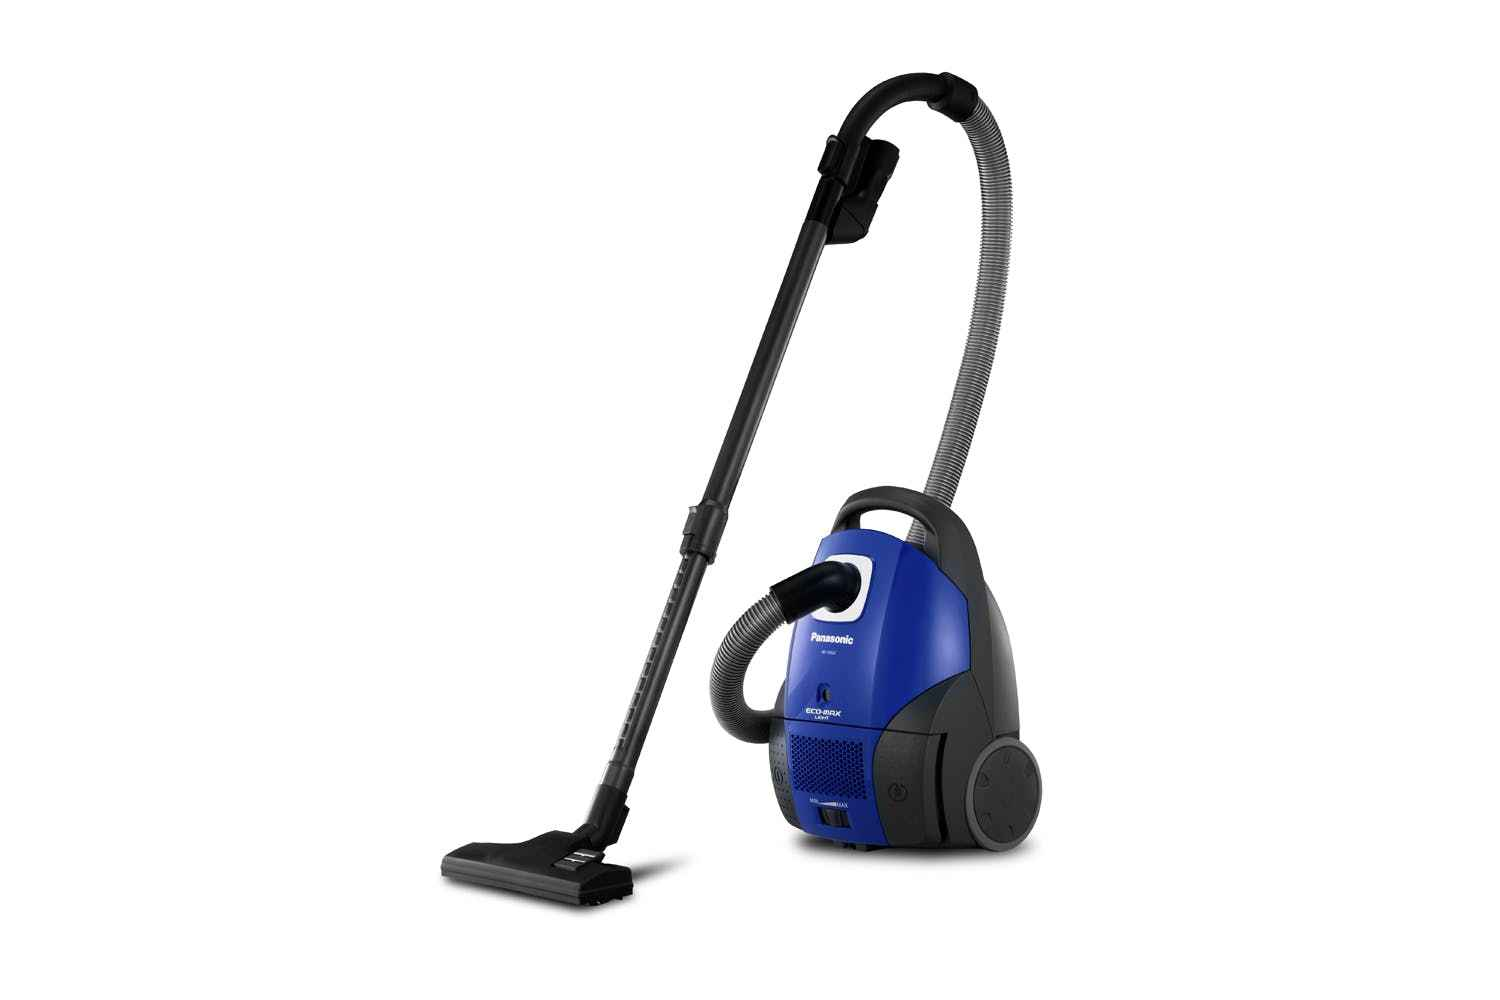 Best Vacuum Under $200